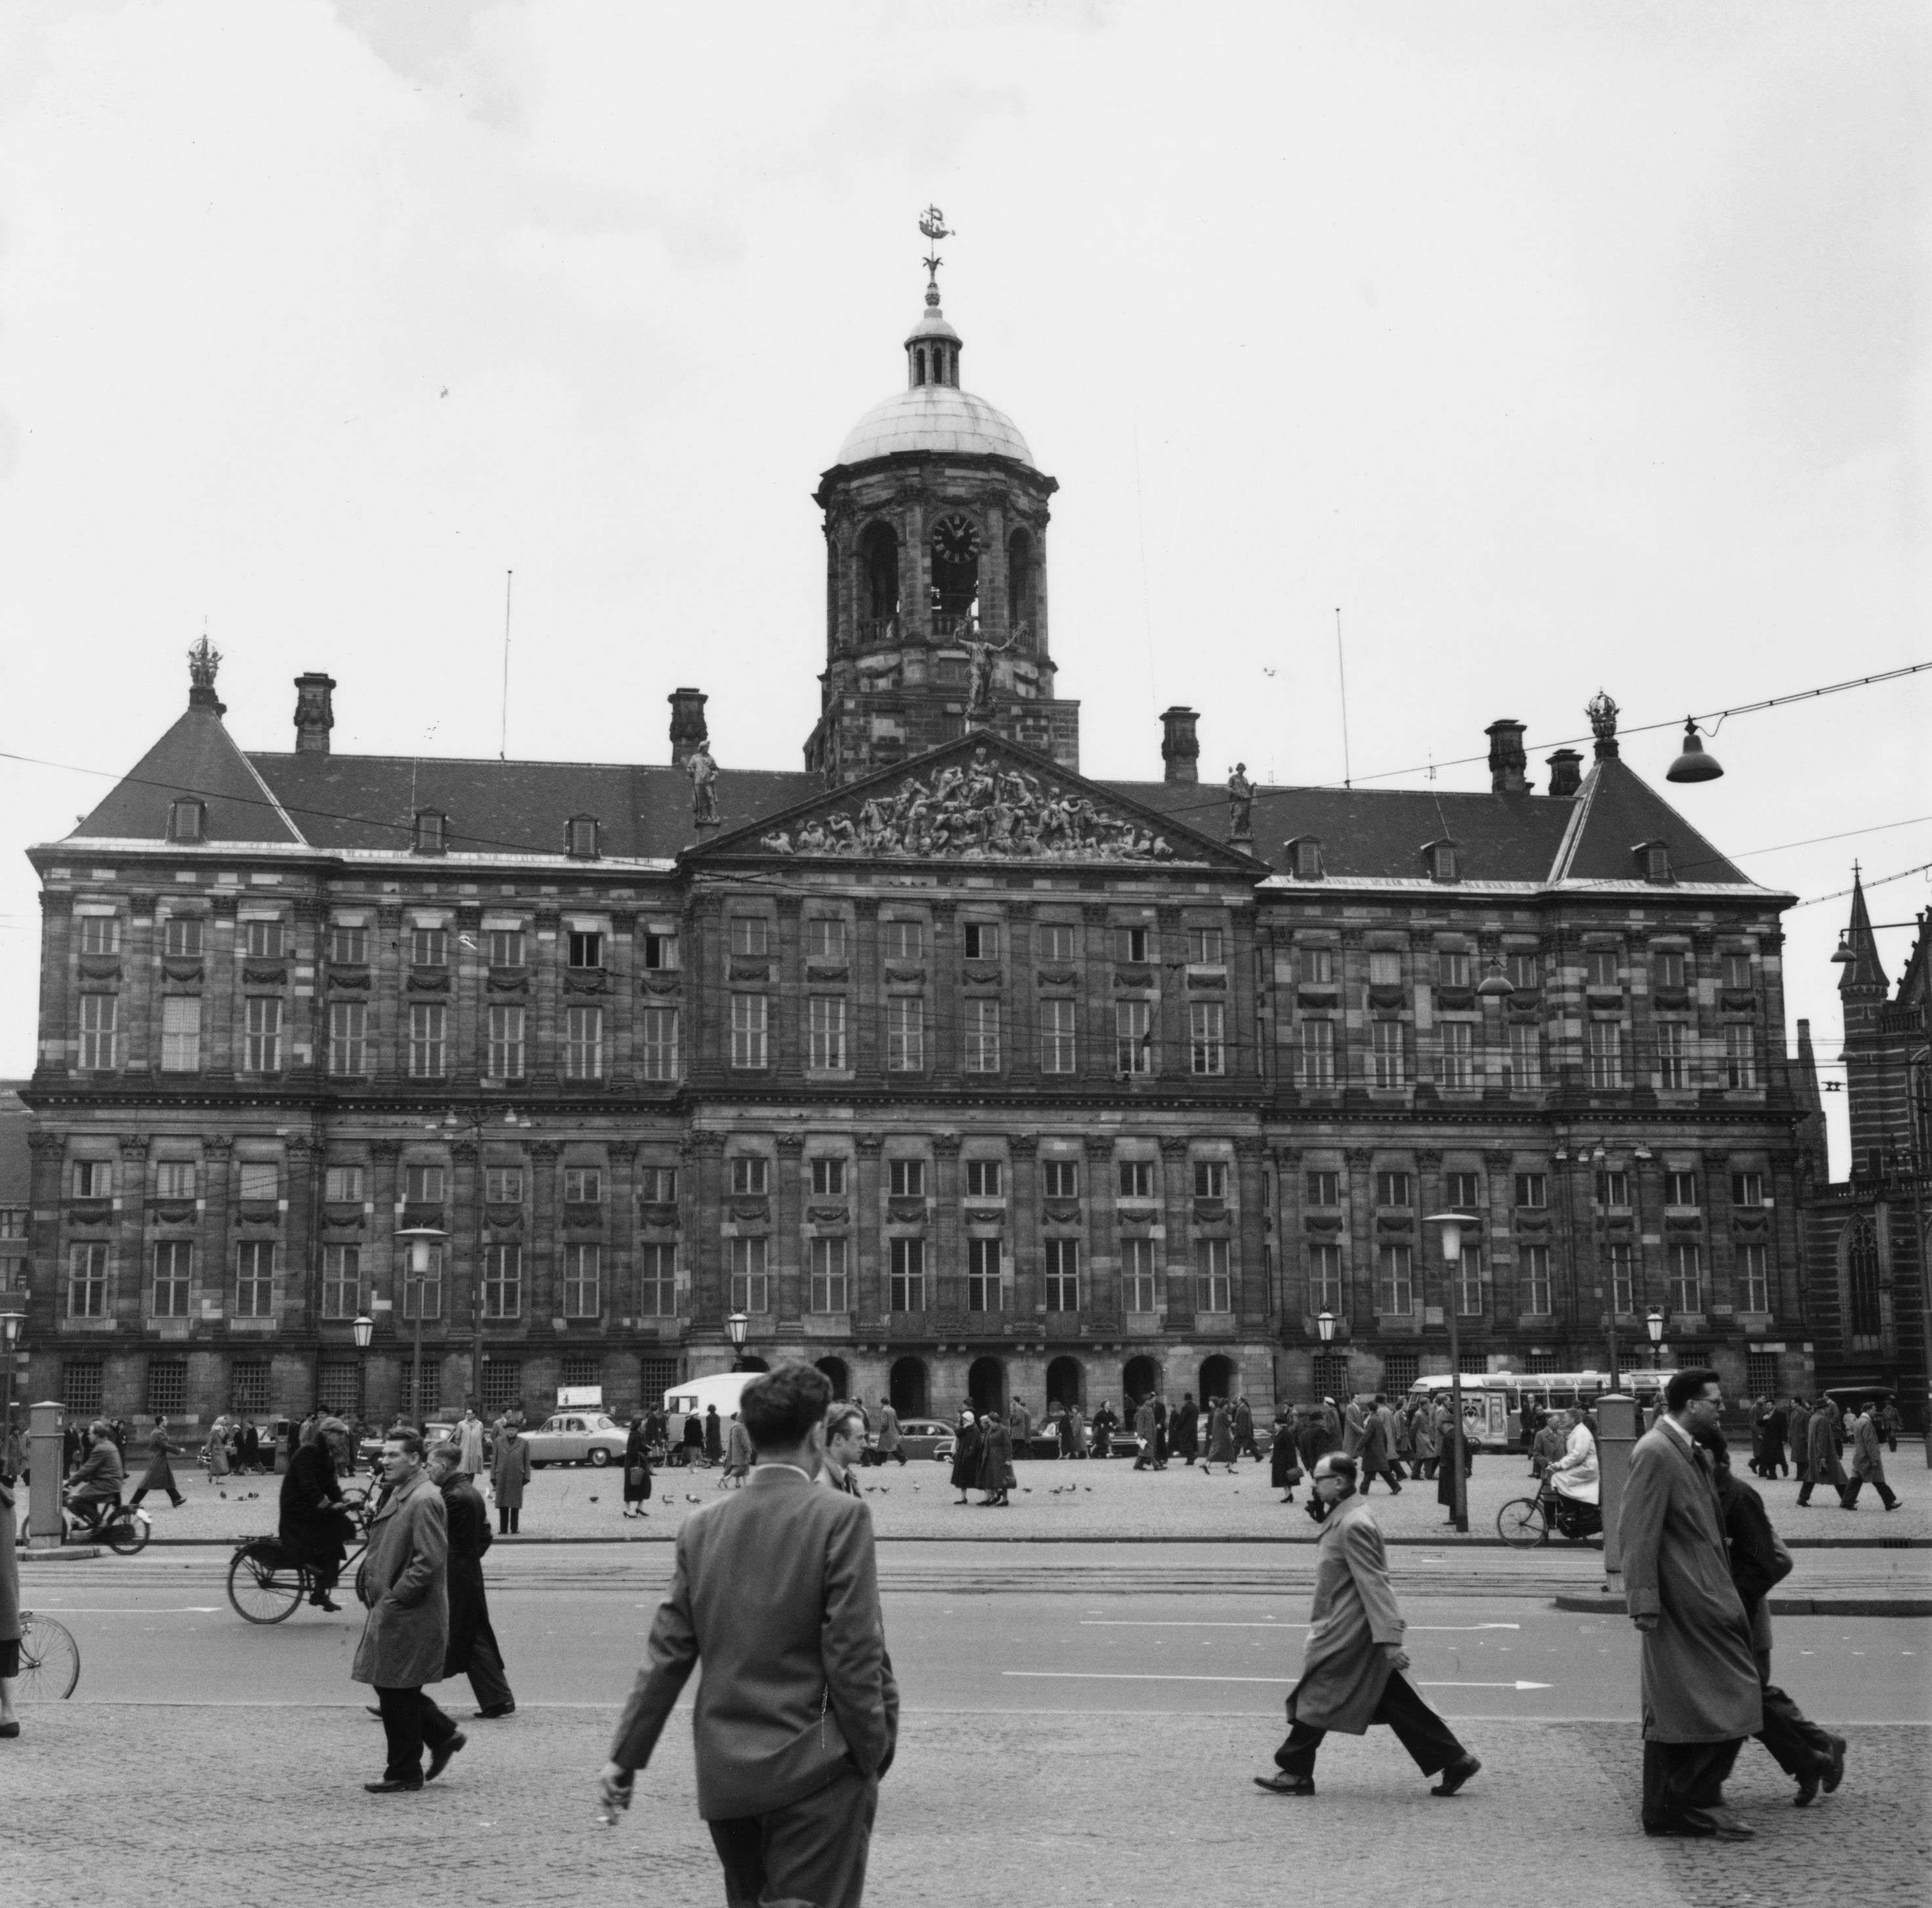 Slide 24 of 55: 4th April 1958: The Royal Palace in Dam Square, Amsterdam. (Photo by George W. Hales/Fox Photos/Getty Images)